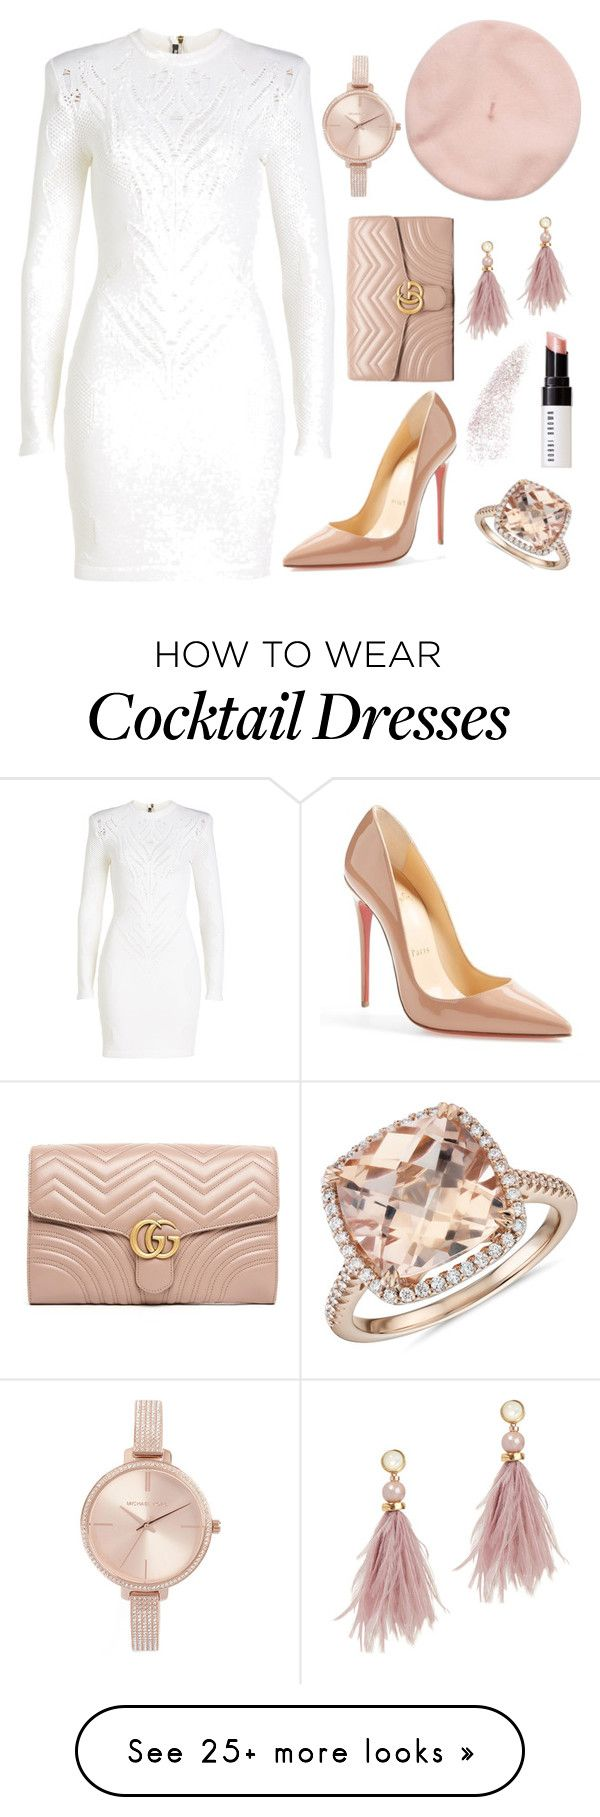 """""""Untitled #433"""" by pinkypenguin04 on Polyvore featuring Balmain, Gucci, Christian Louboutin, Lizzie Fortunato, Michael Kors, Blue Nile and Bobbi Brown Cosmetics"""